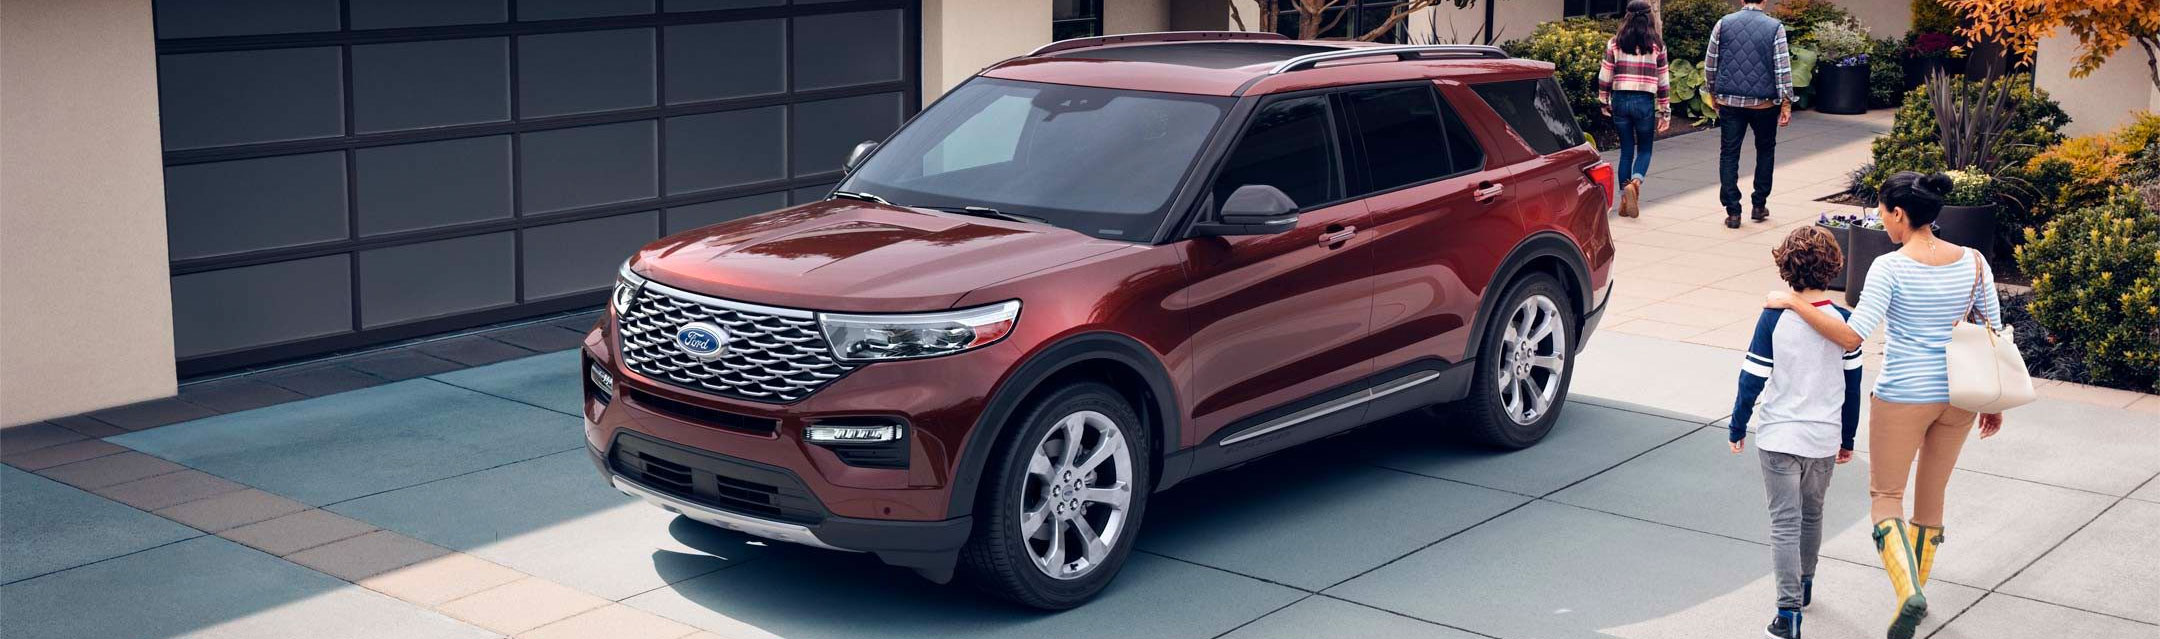 2020 Explorer shown parked outside a modern home